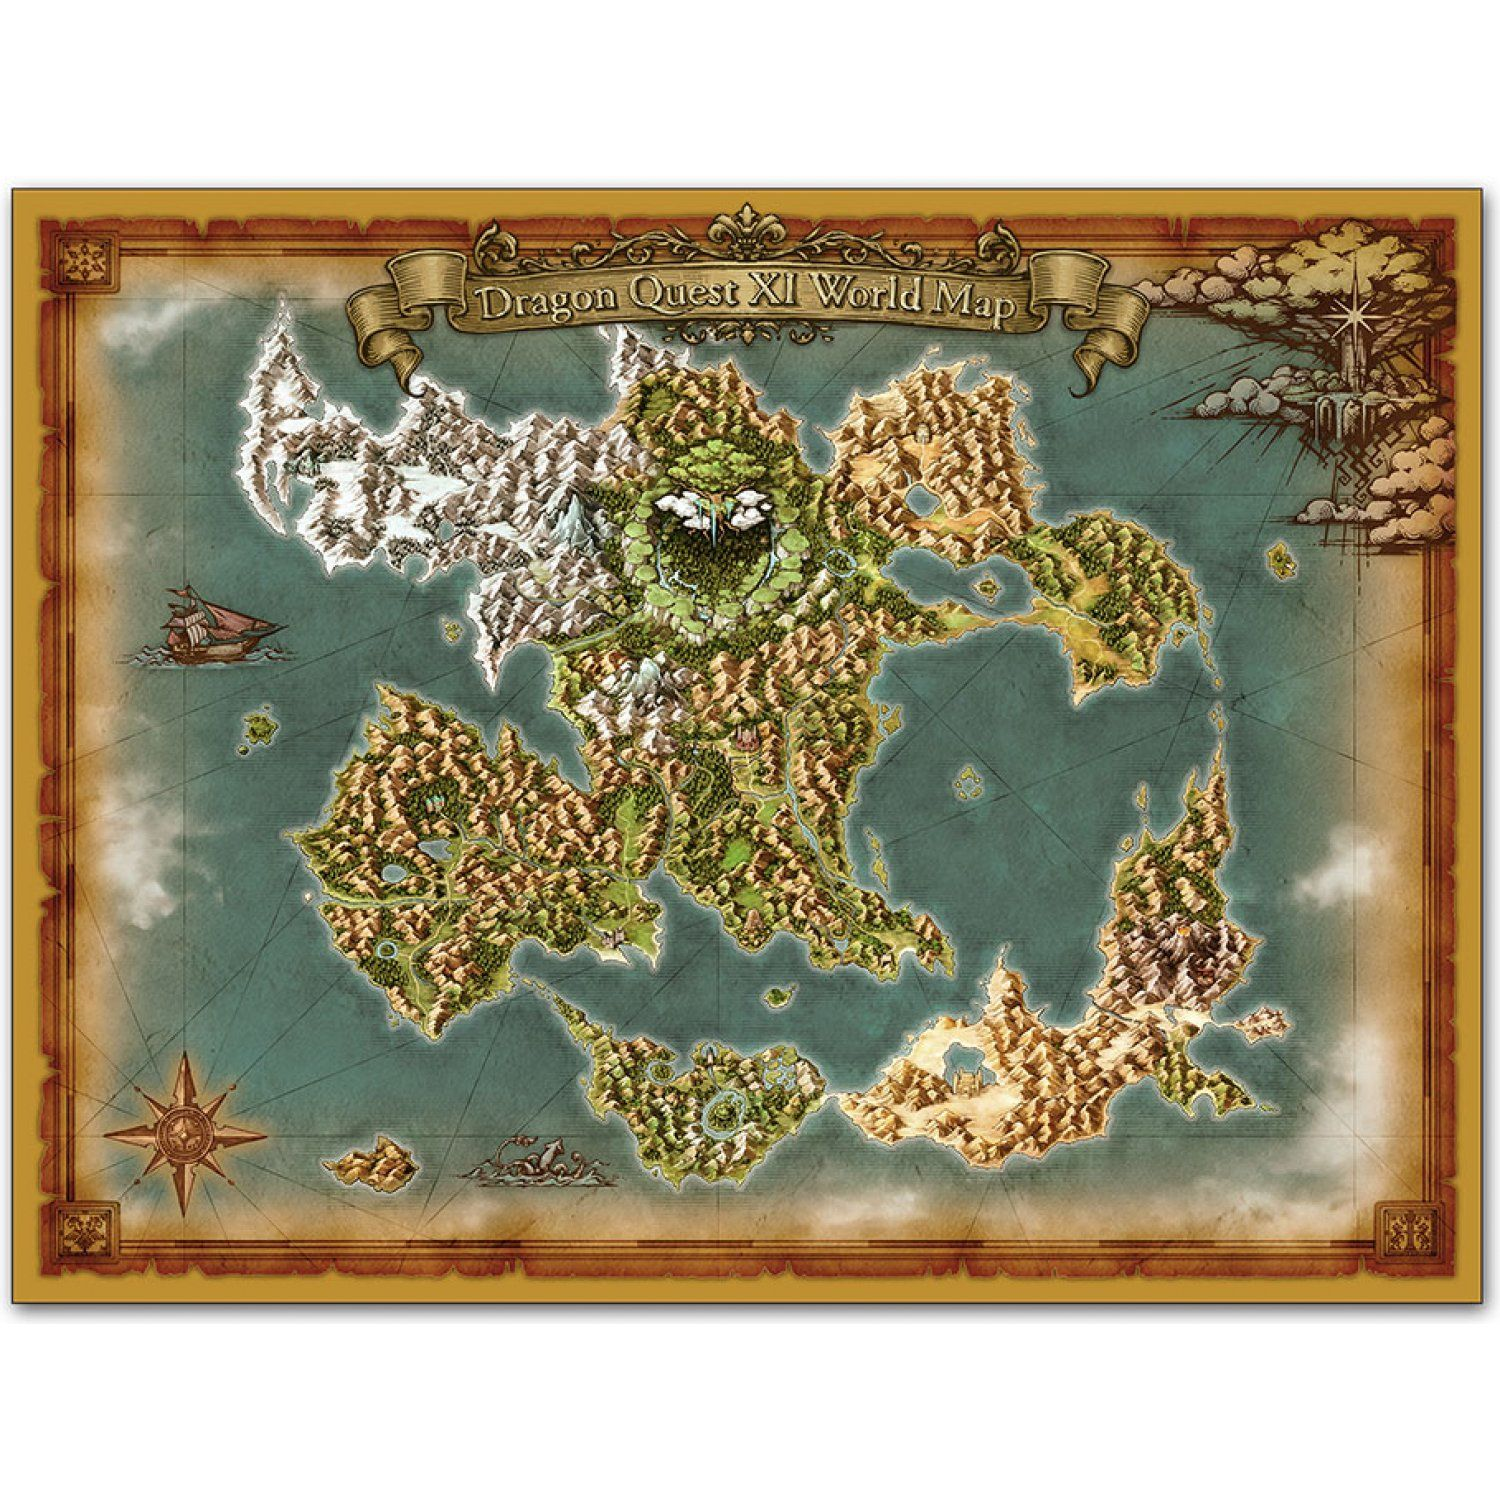 Dragon Quest Xi World Map END OF) SUMMER SALE 2020 | Dragon quest, Vintage world maps, World map